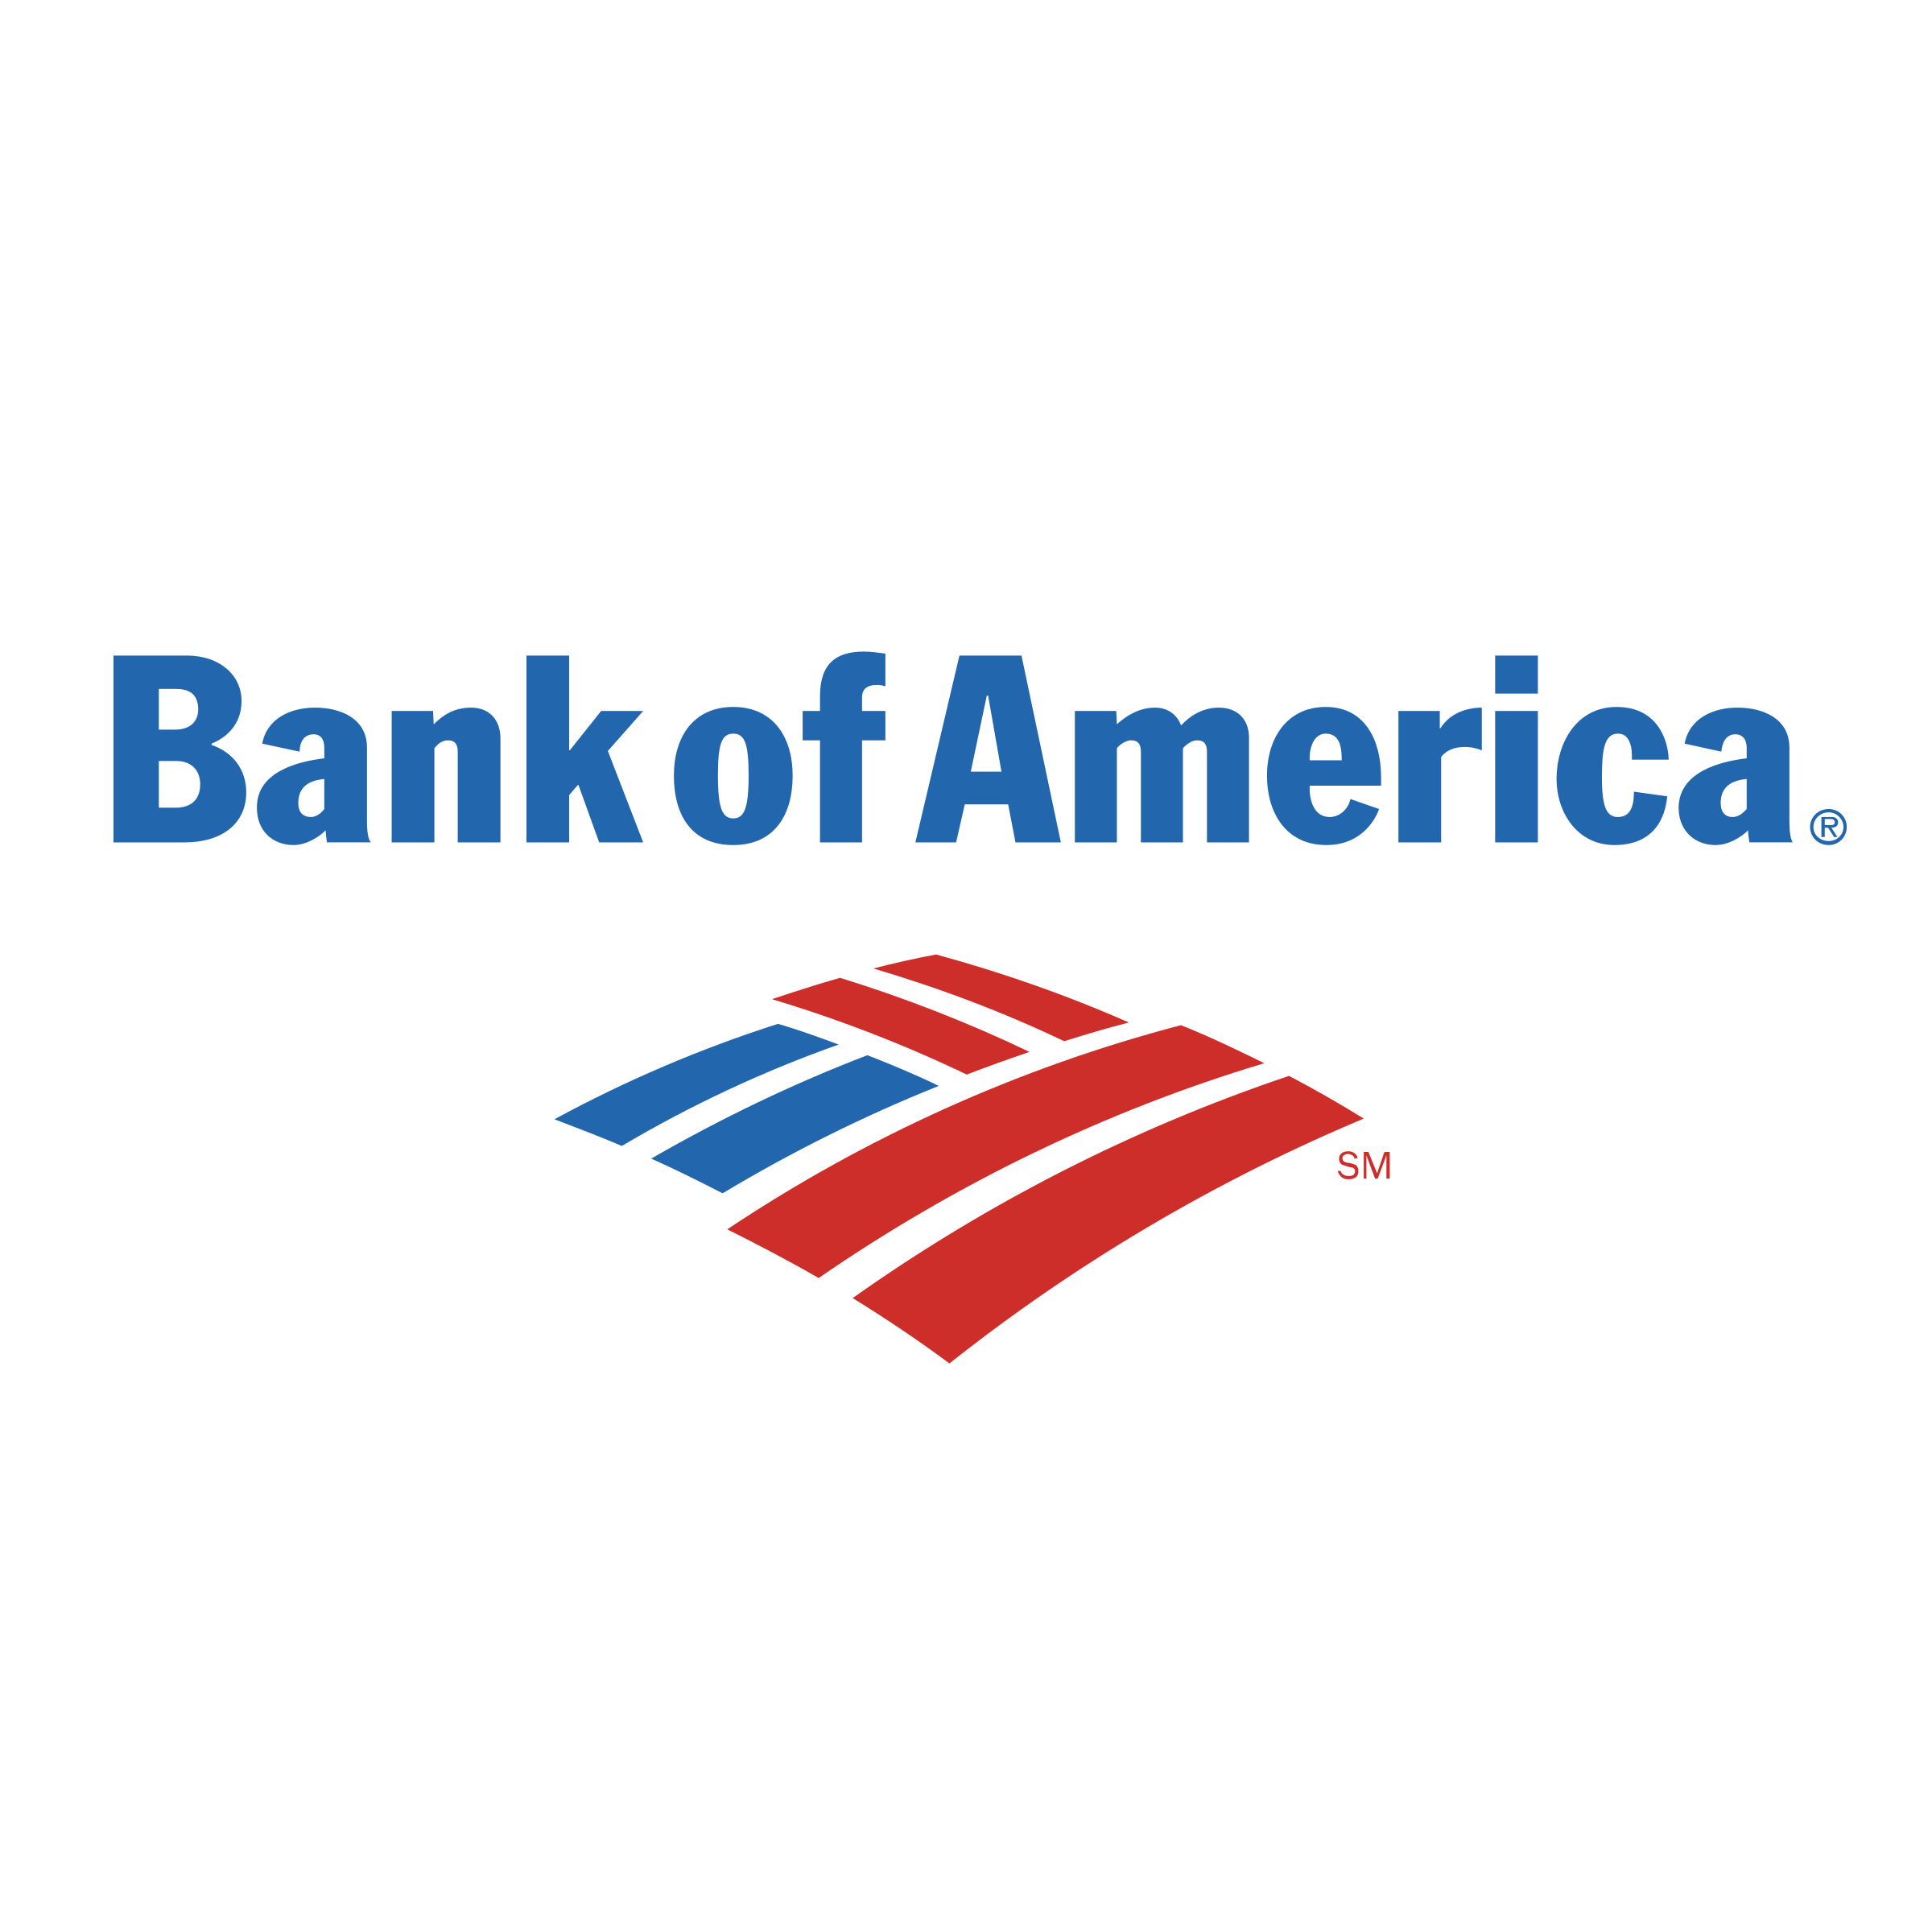 Bank of america 4 logo png transparent